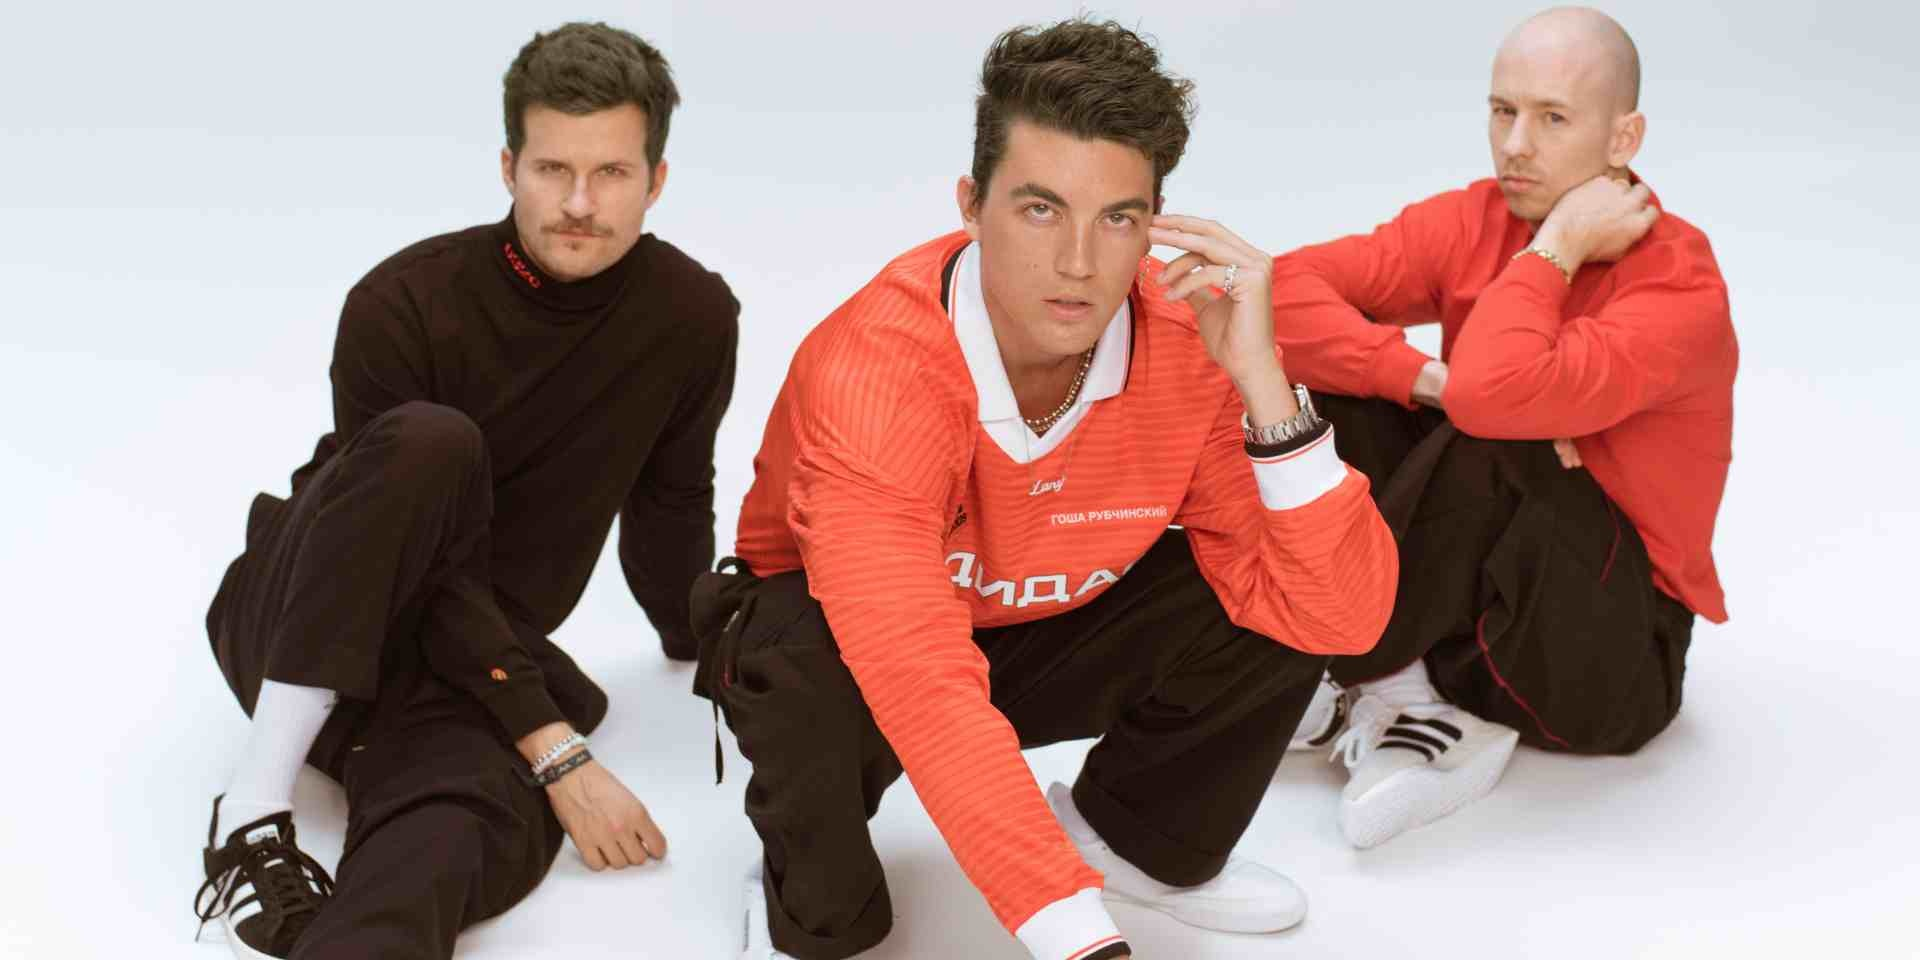 """It really feels like we're at the edge of something bigger every time we come to Asia"": An interview with Les Priest and Jake Goss of LANY"